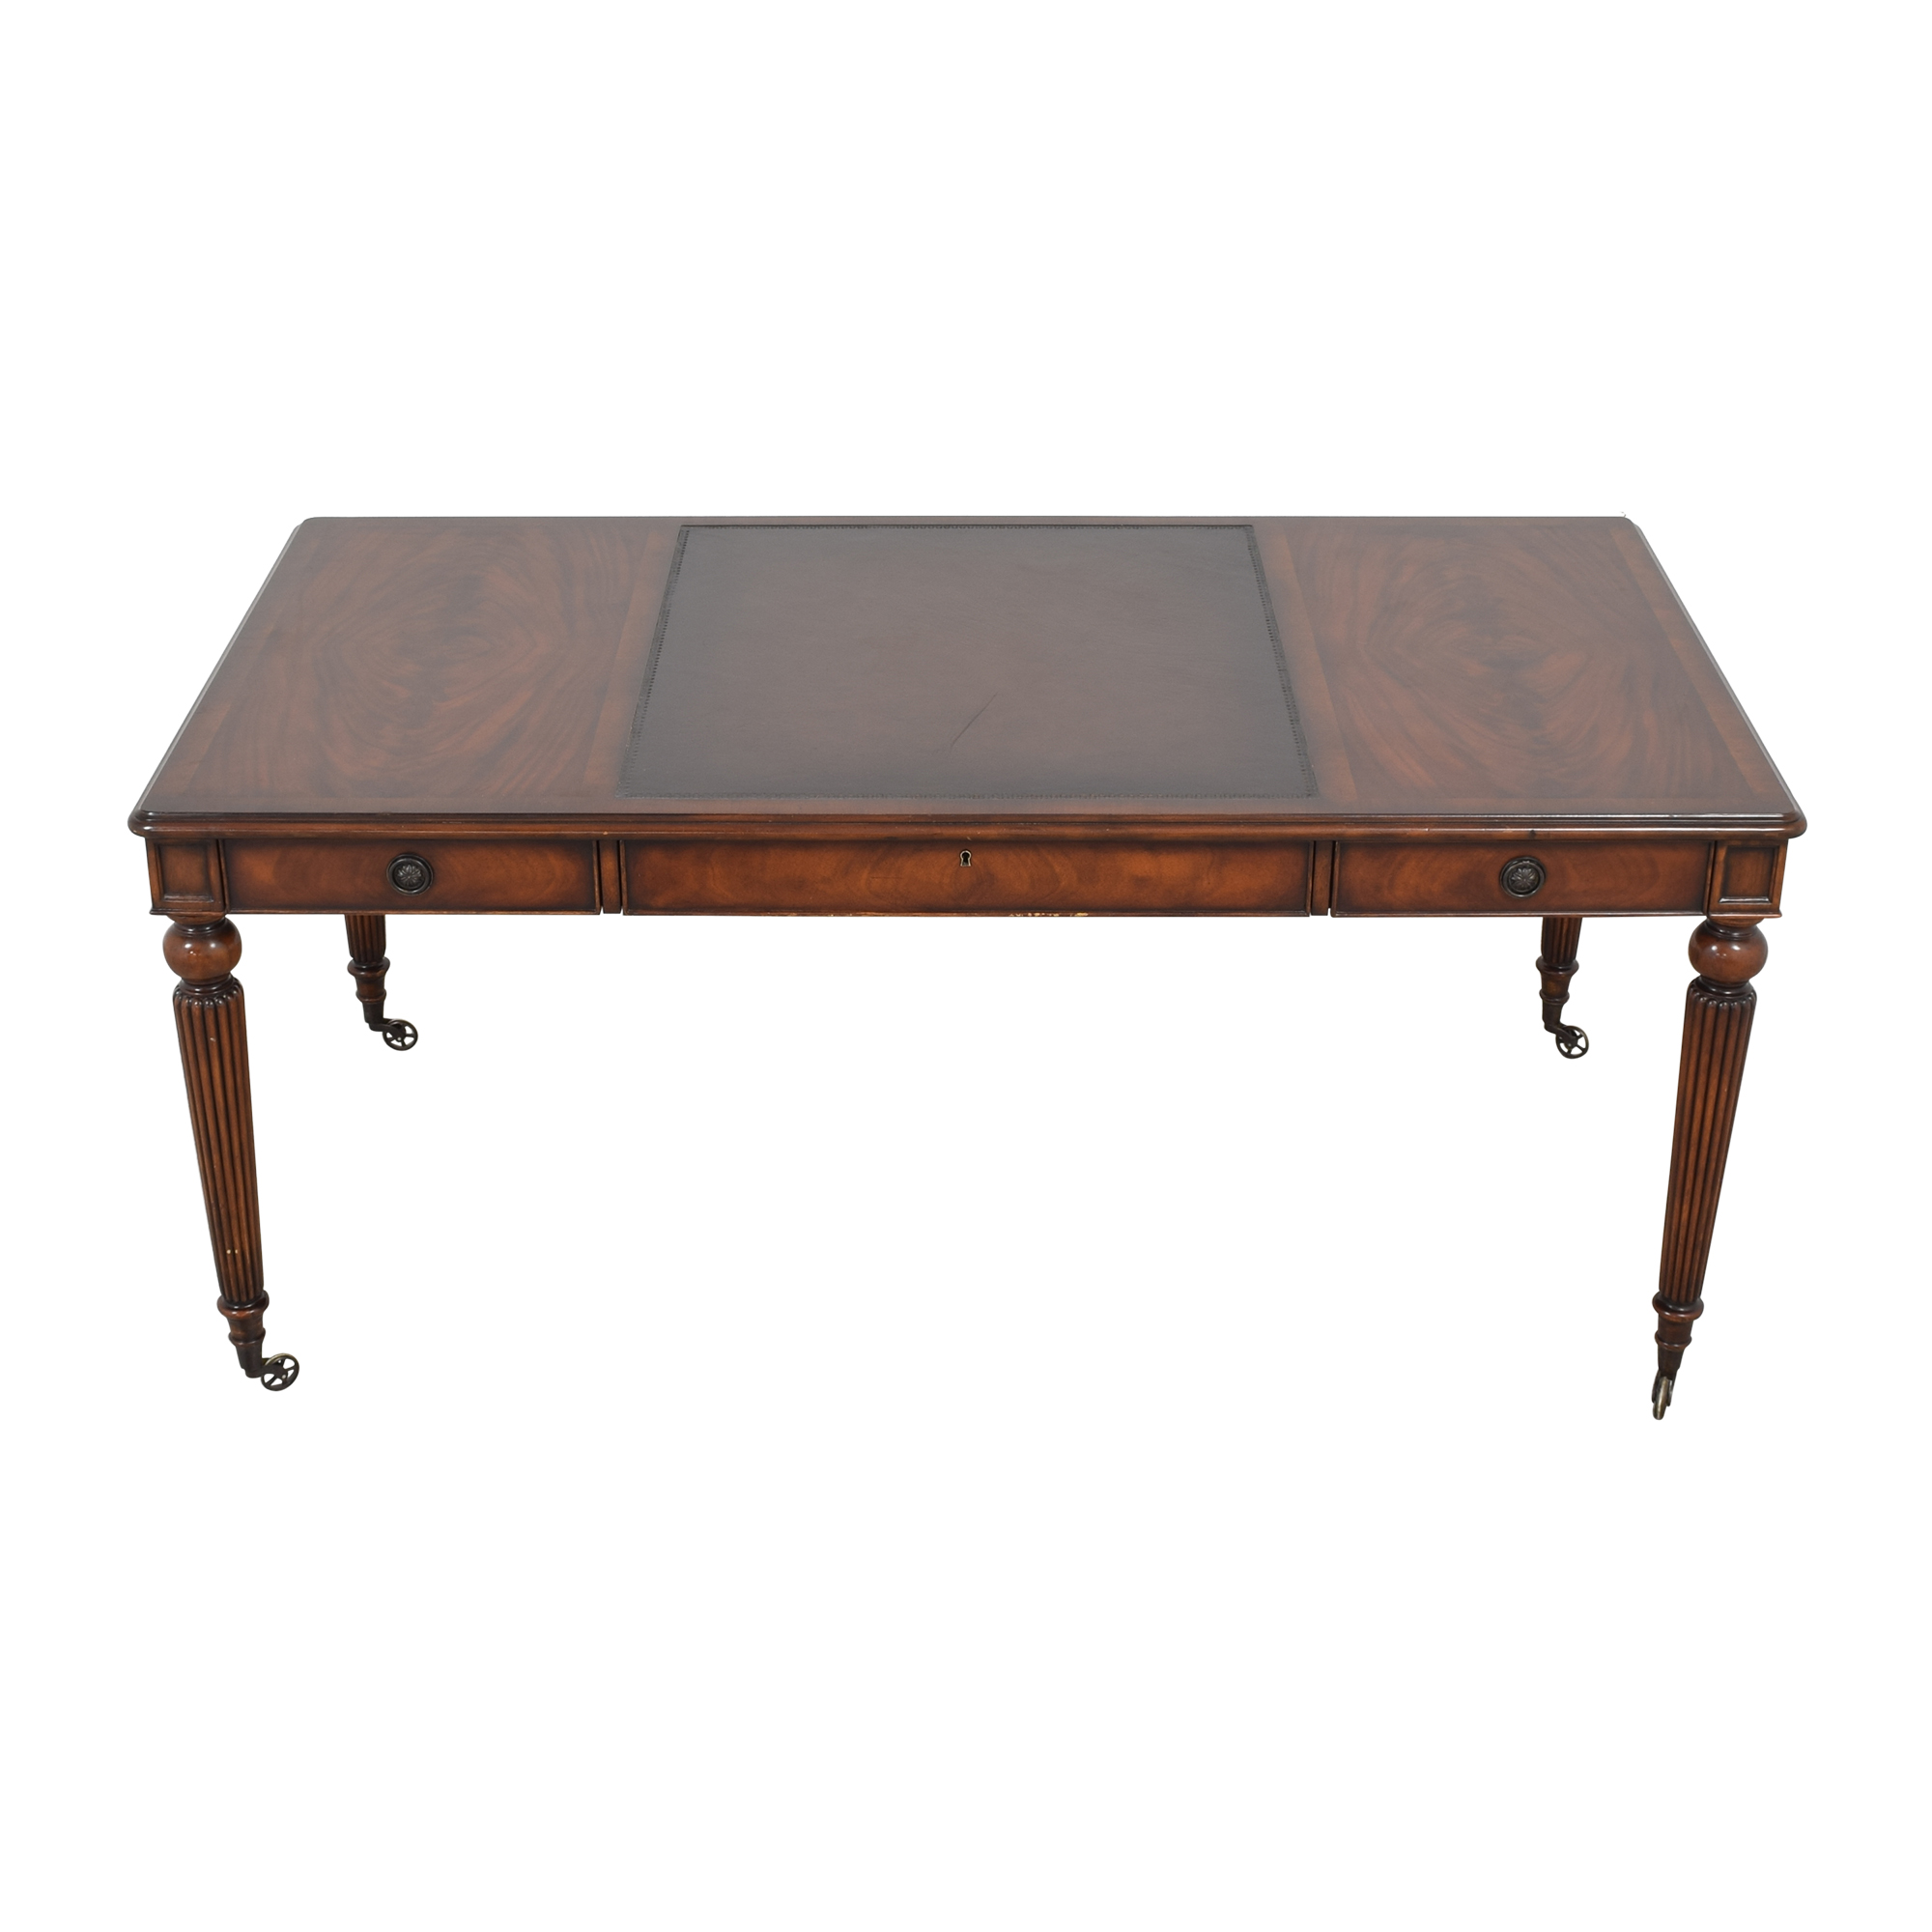 buy  Writing Desk on Casters online